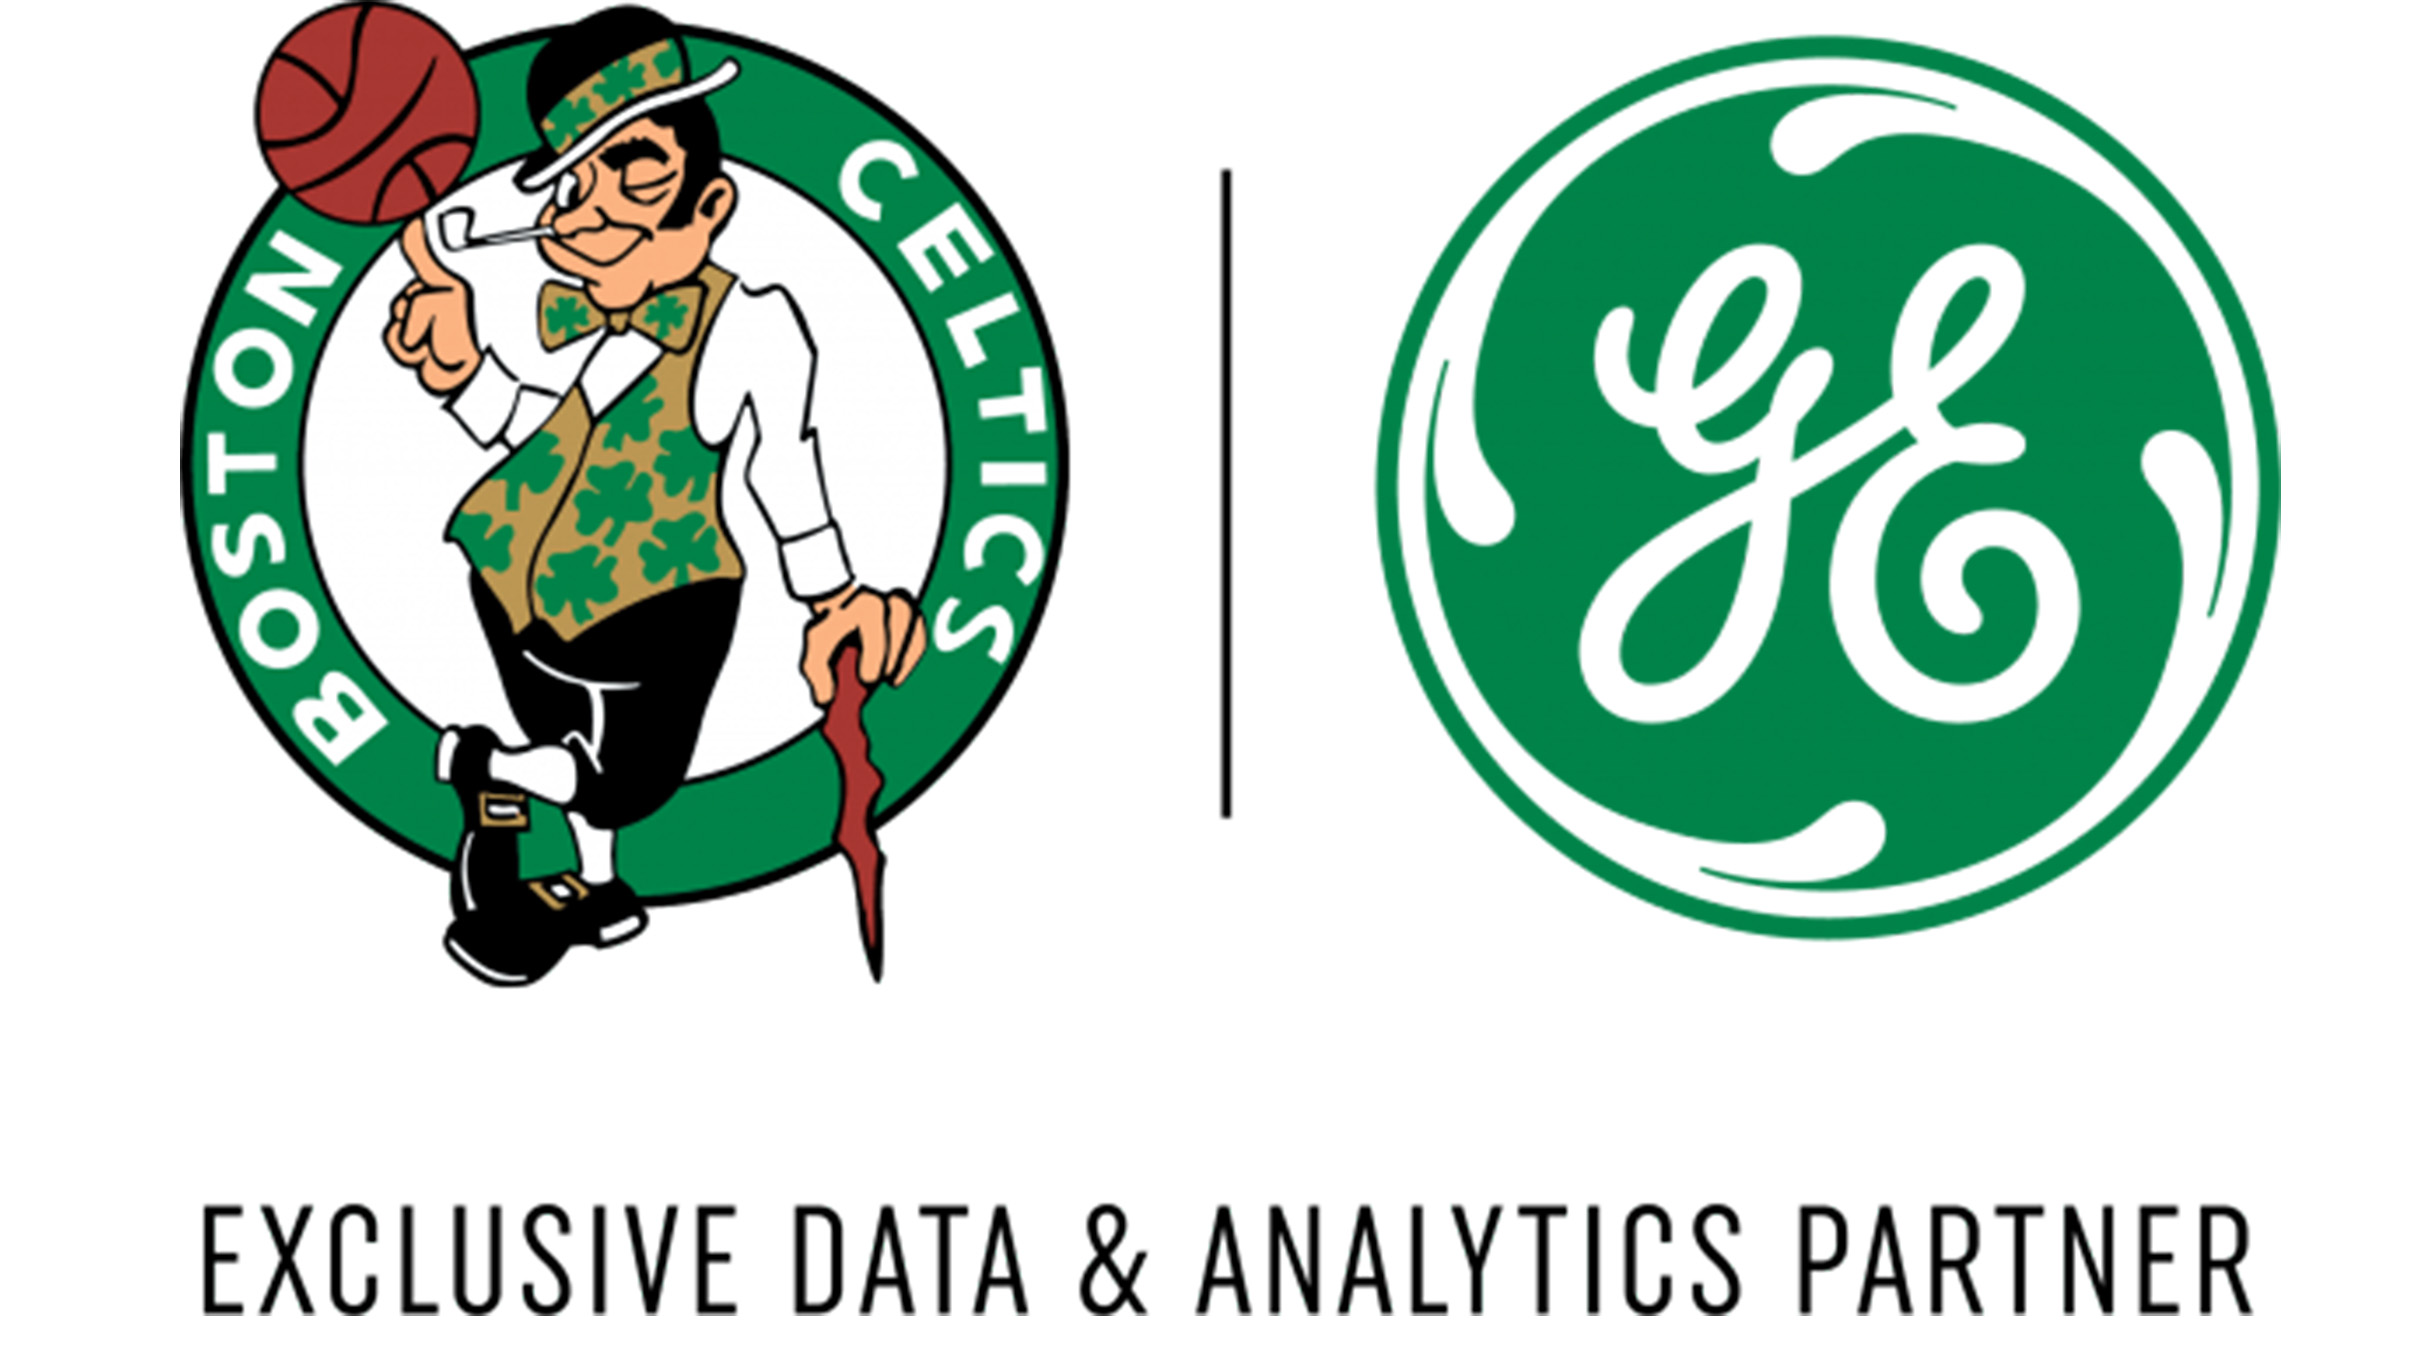 GE Digital and Boston Celtics | Data Science Partners